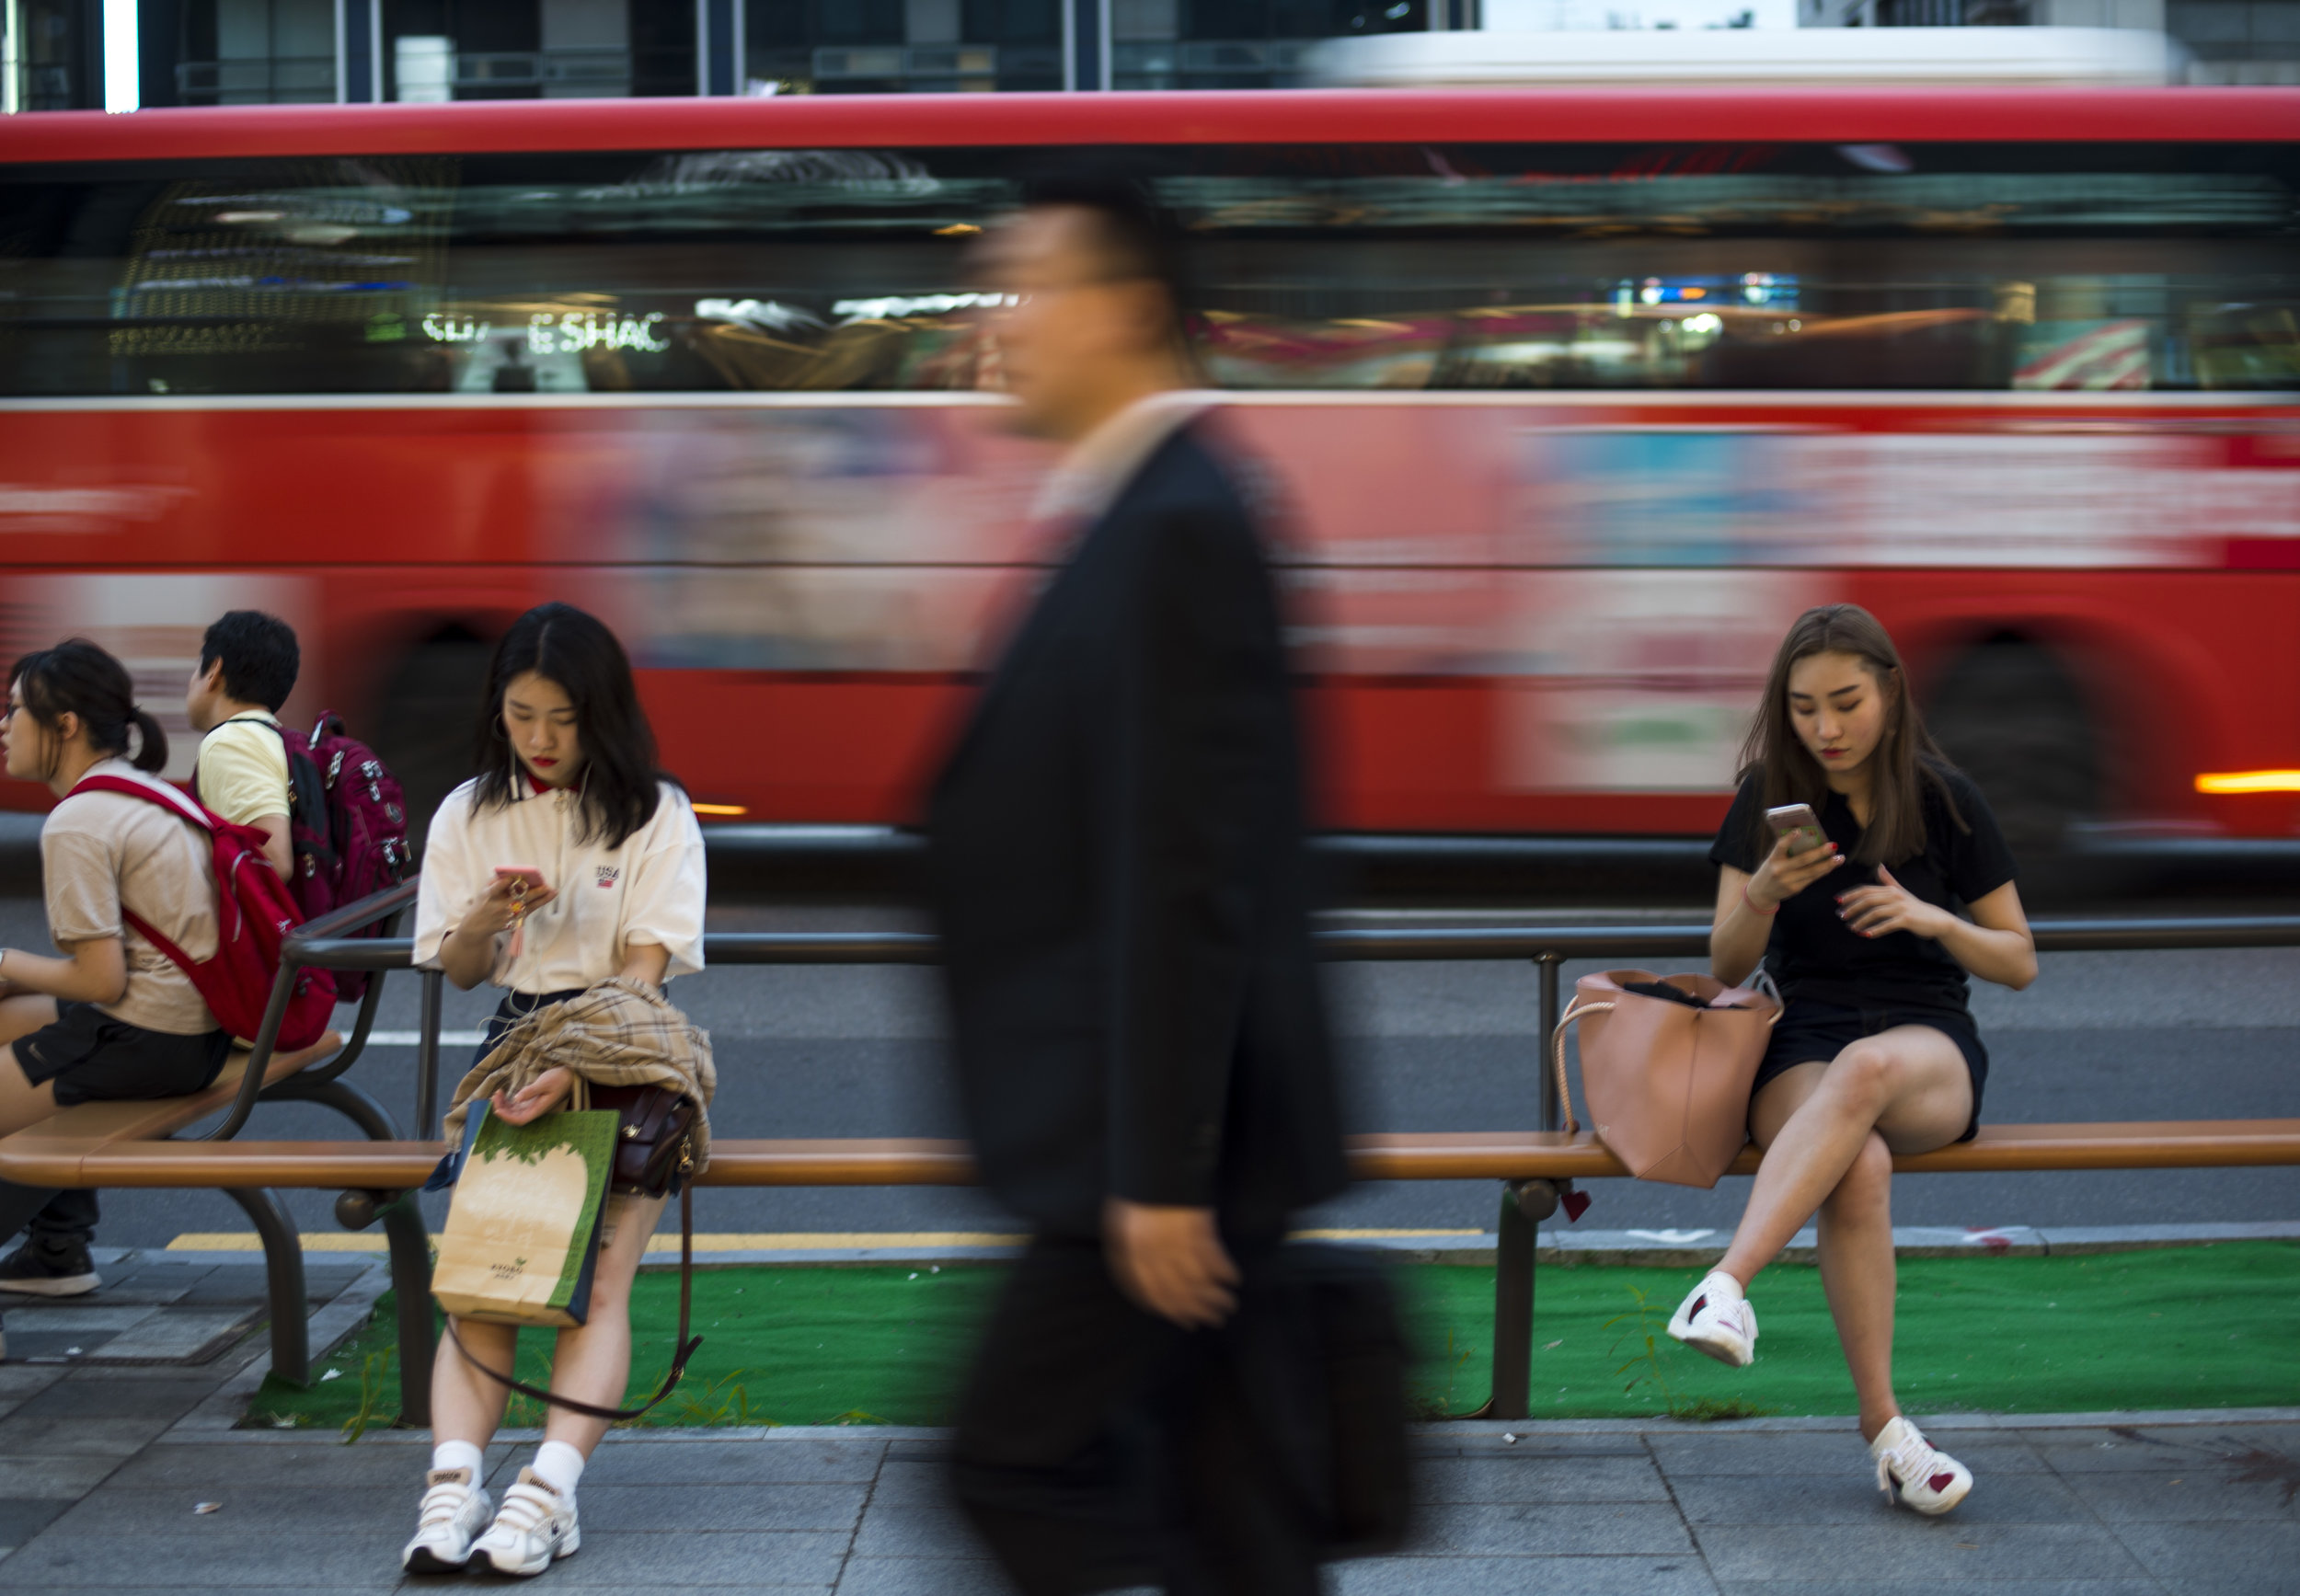 People use their mobile phones on a busy street in Seoul, South Korea. With falling birth rates and rising divorce rates, South Korea is seeing an uptick in businesses focussing on solo consumers. This has had a ripple effect, with more people embracing time spent alone.